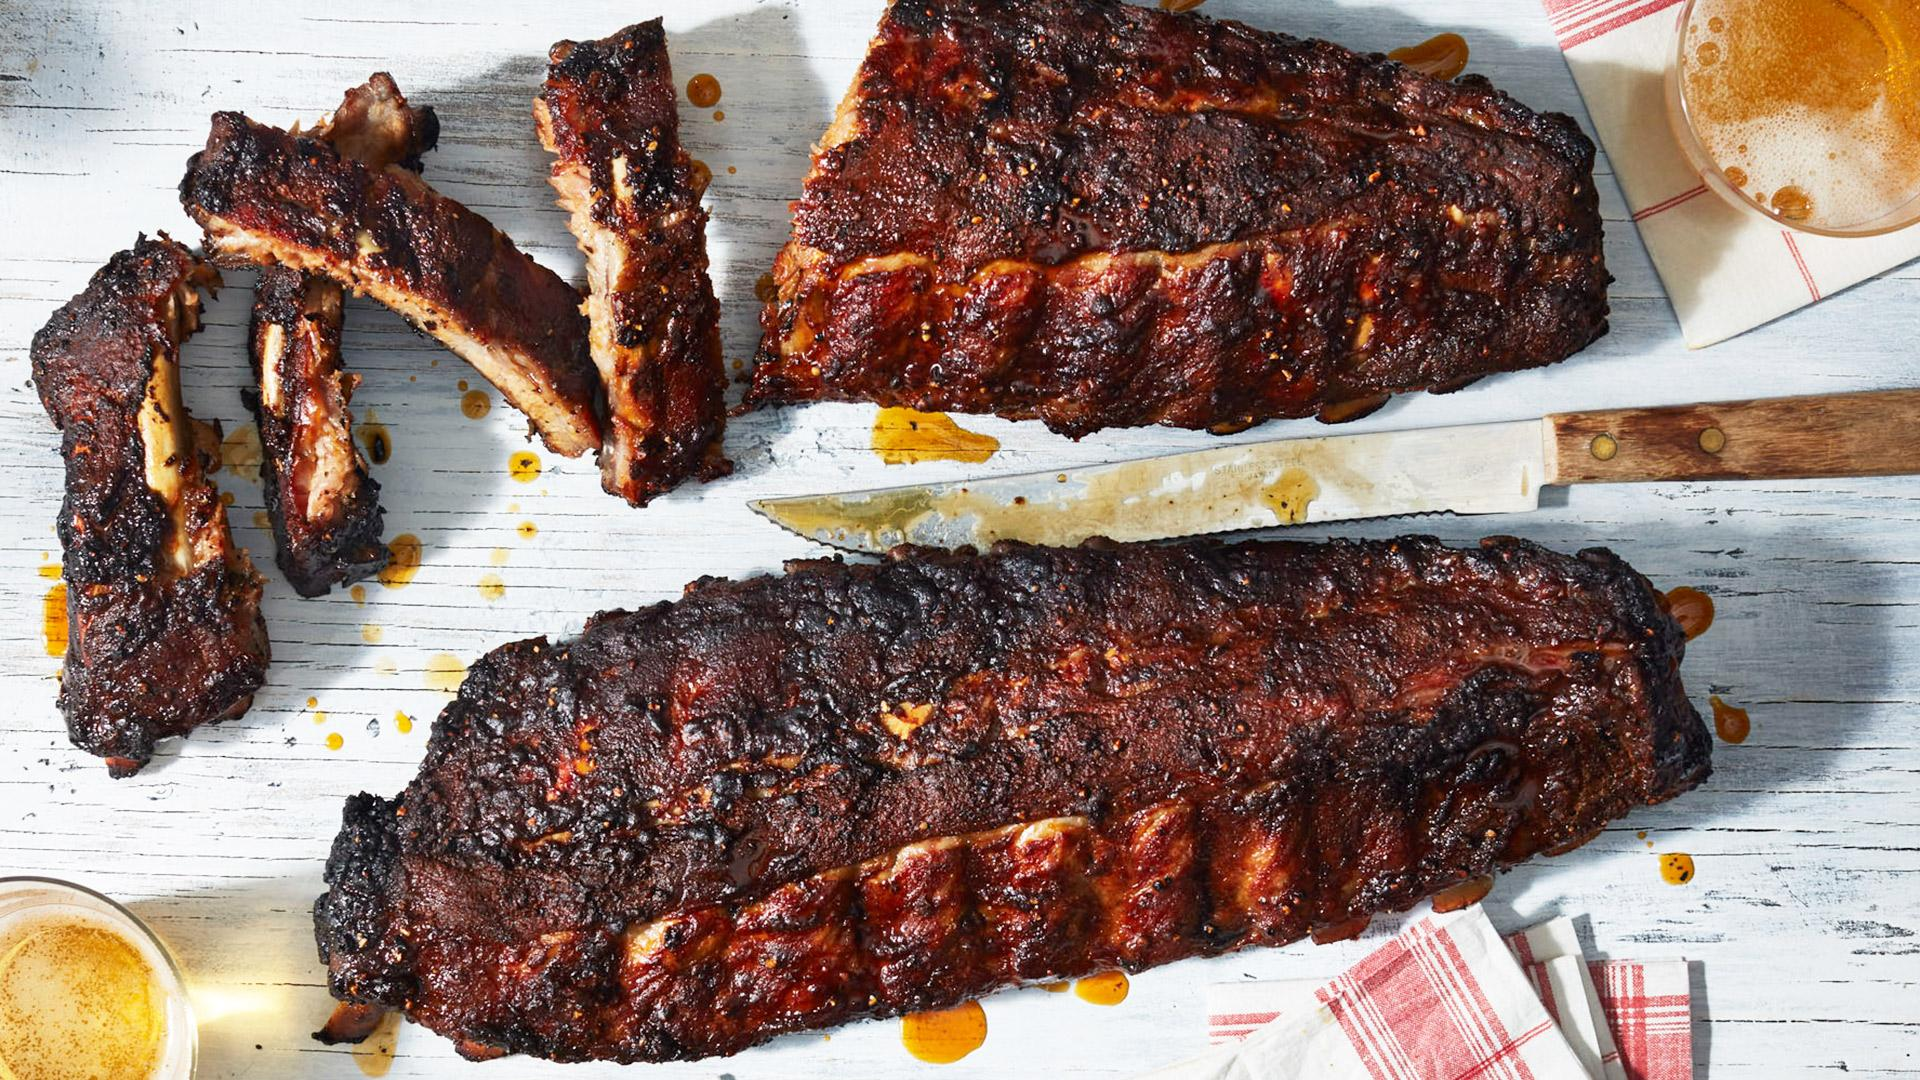 How to cook tender spare ribs on the grill